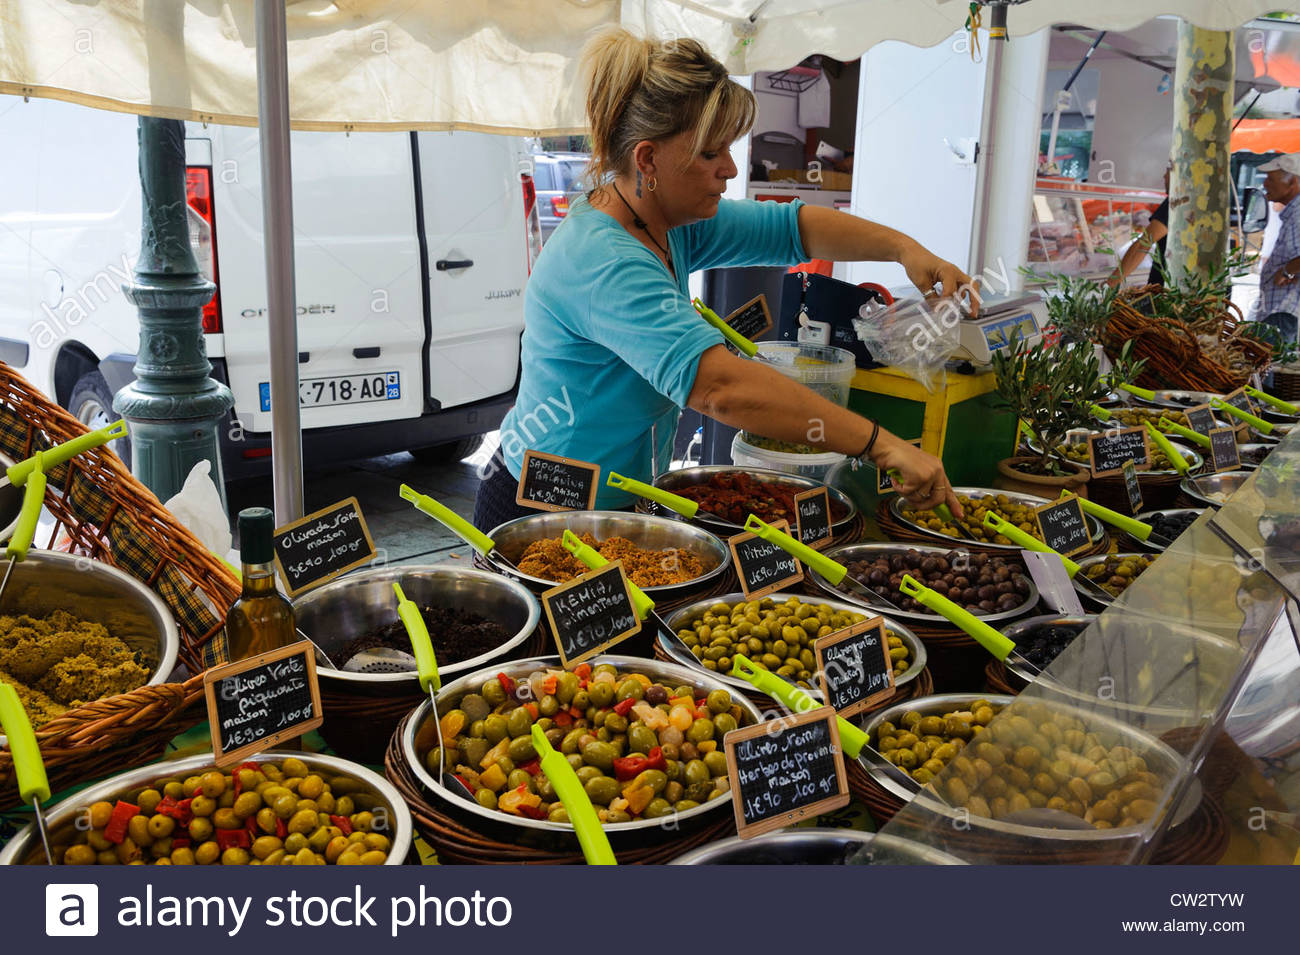 Château de Meursault Côte de Beaune, Market on Place du Marché in Bastia, Corsica. France Stock Photo ...